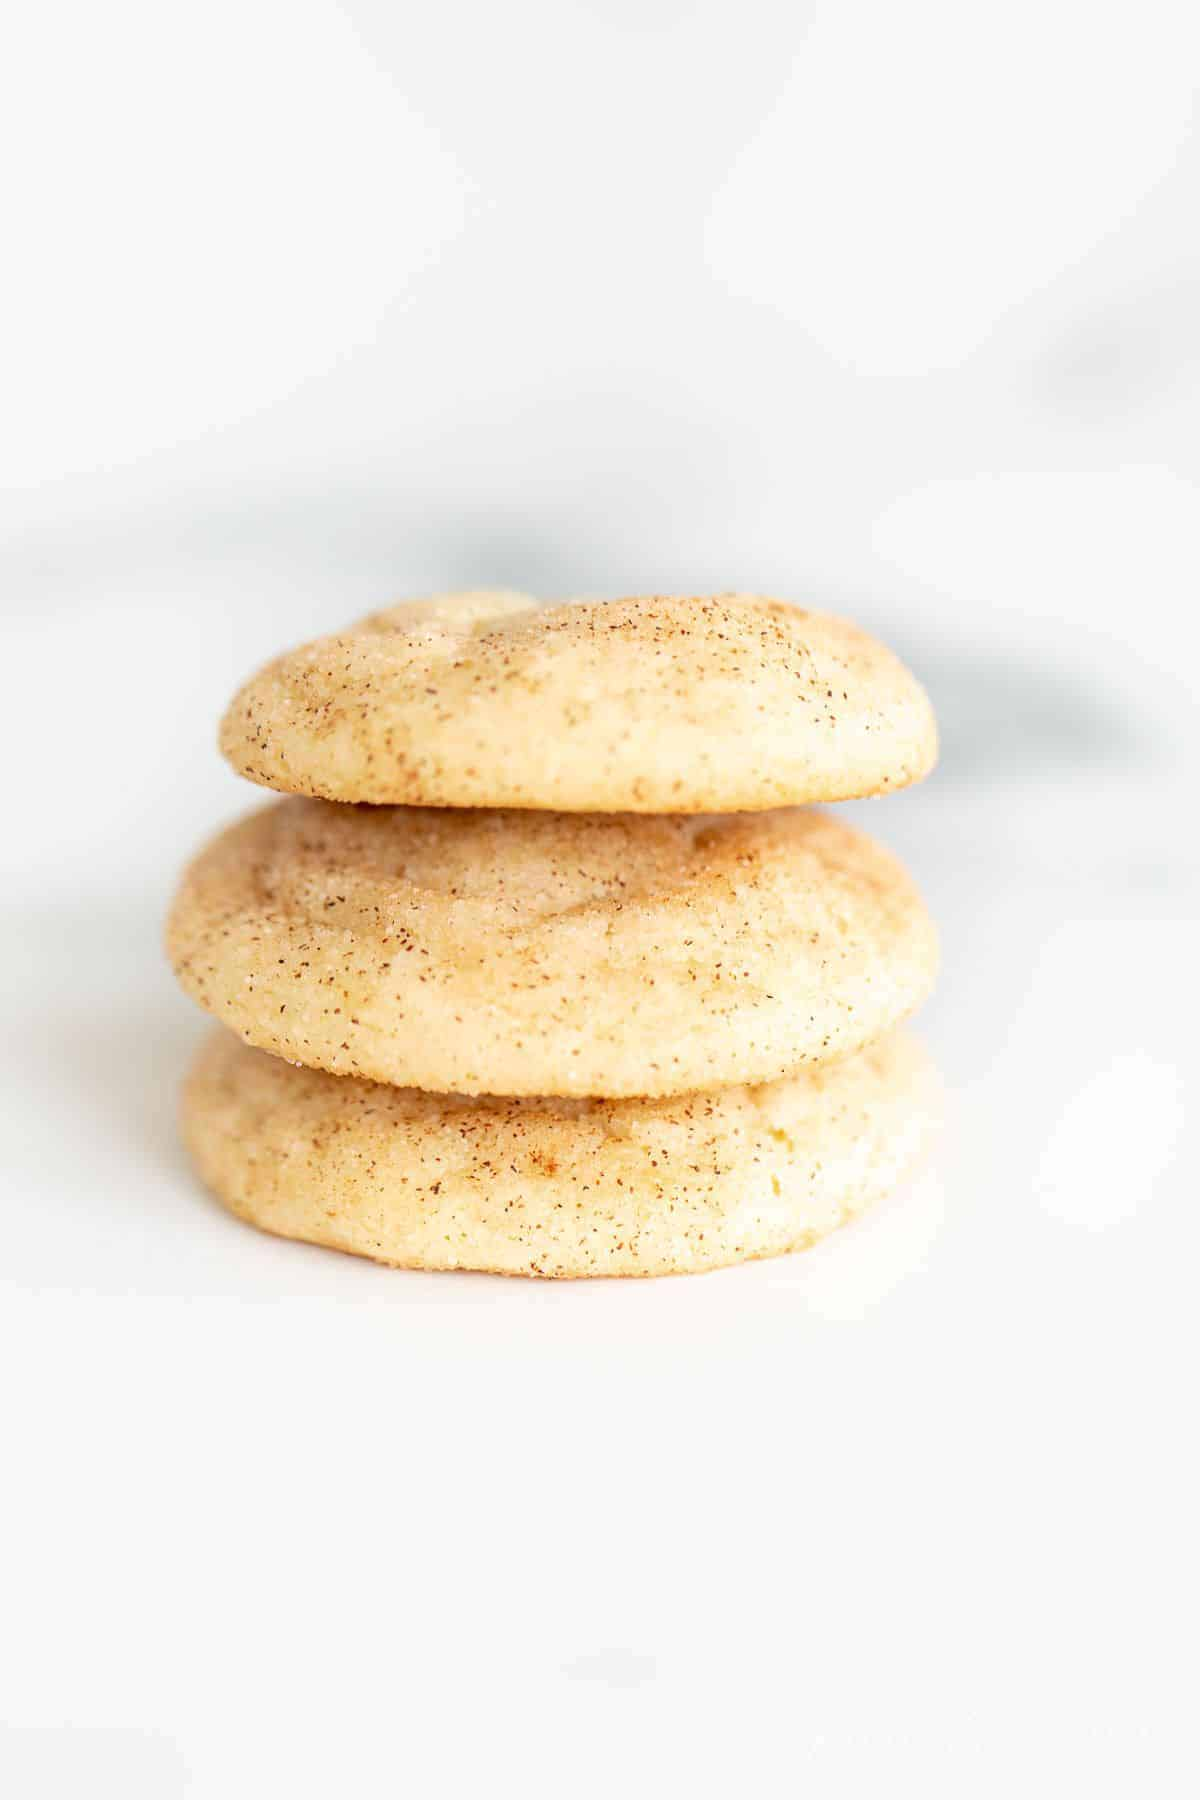 A stack of three snickerdoodle cookies without cream of tartar on a marble surface.